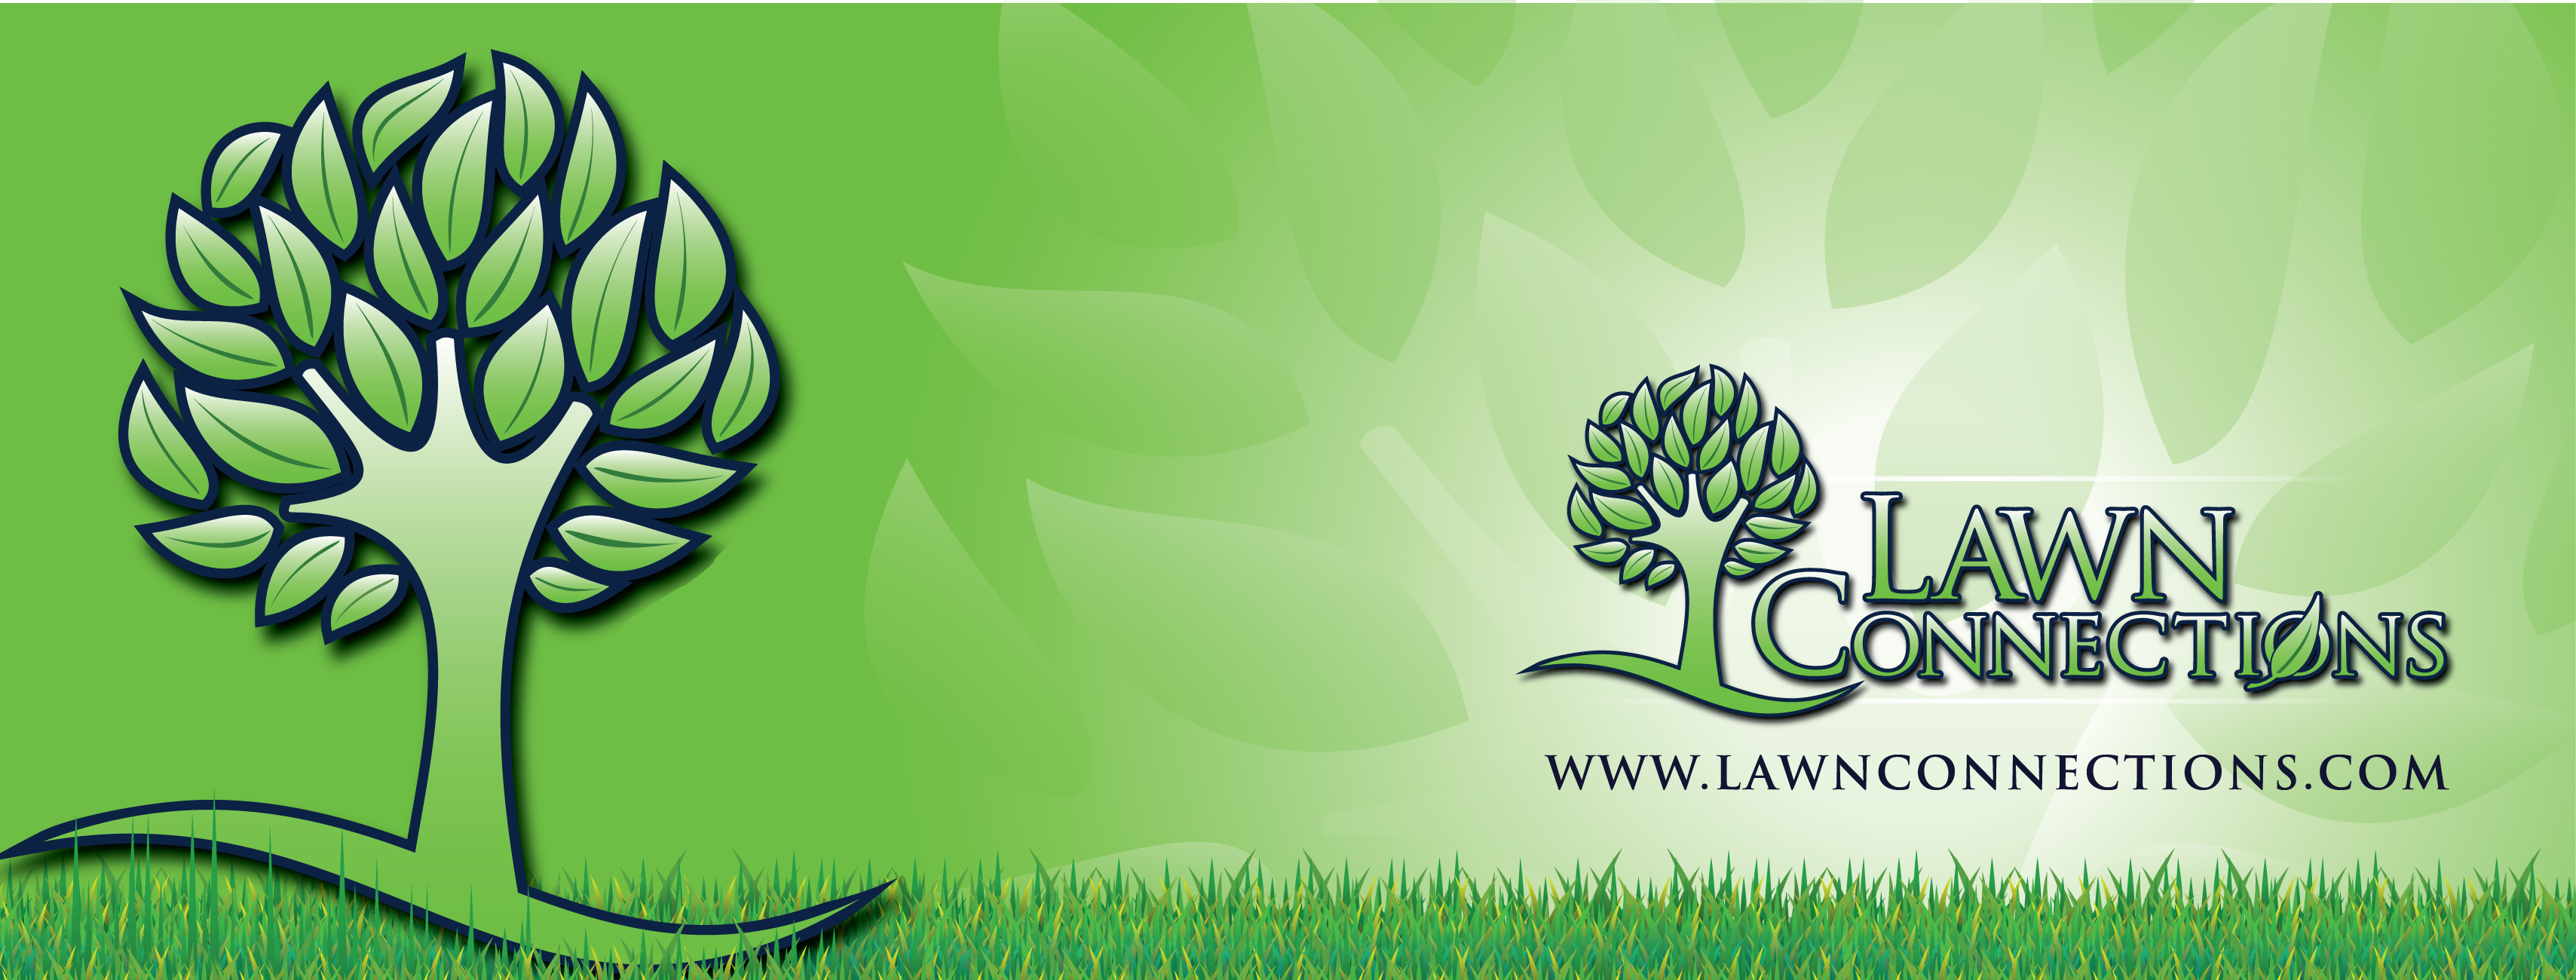 Lawn Services Dallas Fort Worth